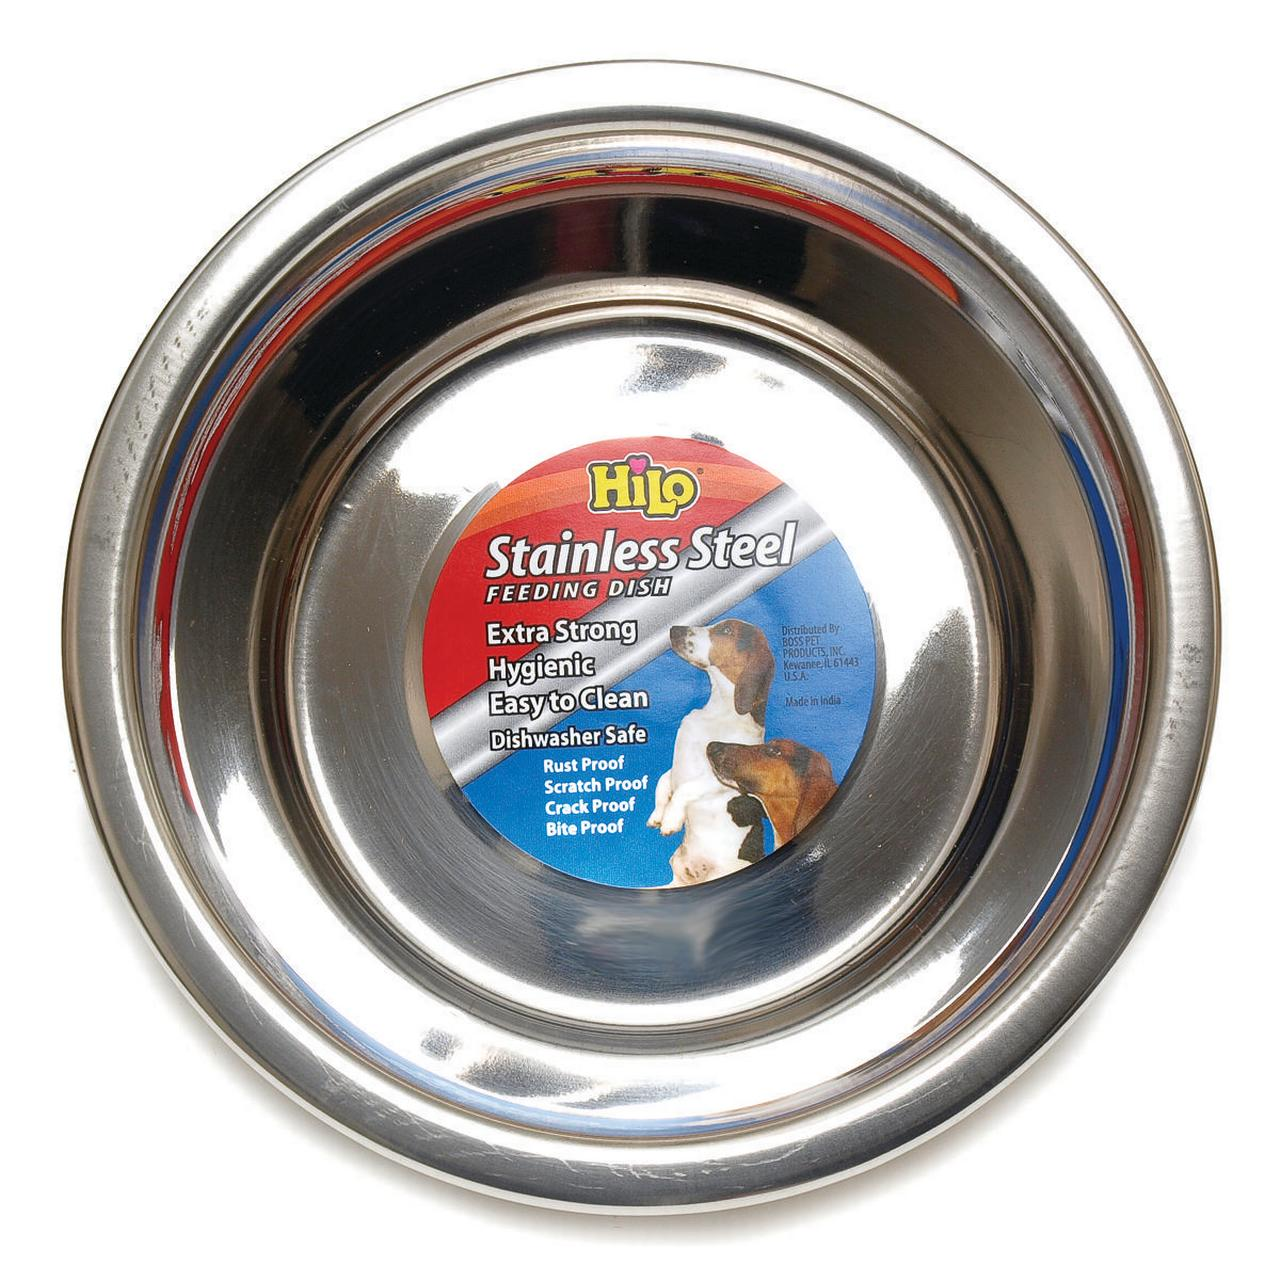 Boss Pet 56620 Hilo Pet Feeding Bowls, Stainless Steel, 2 Qt